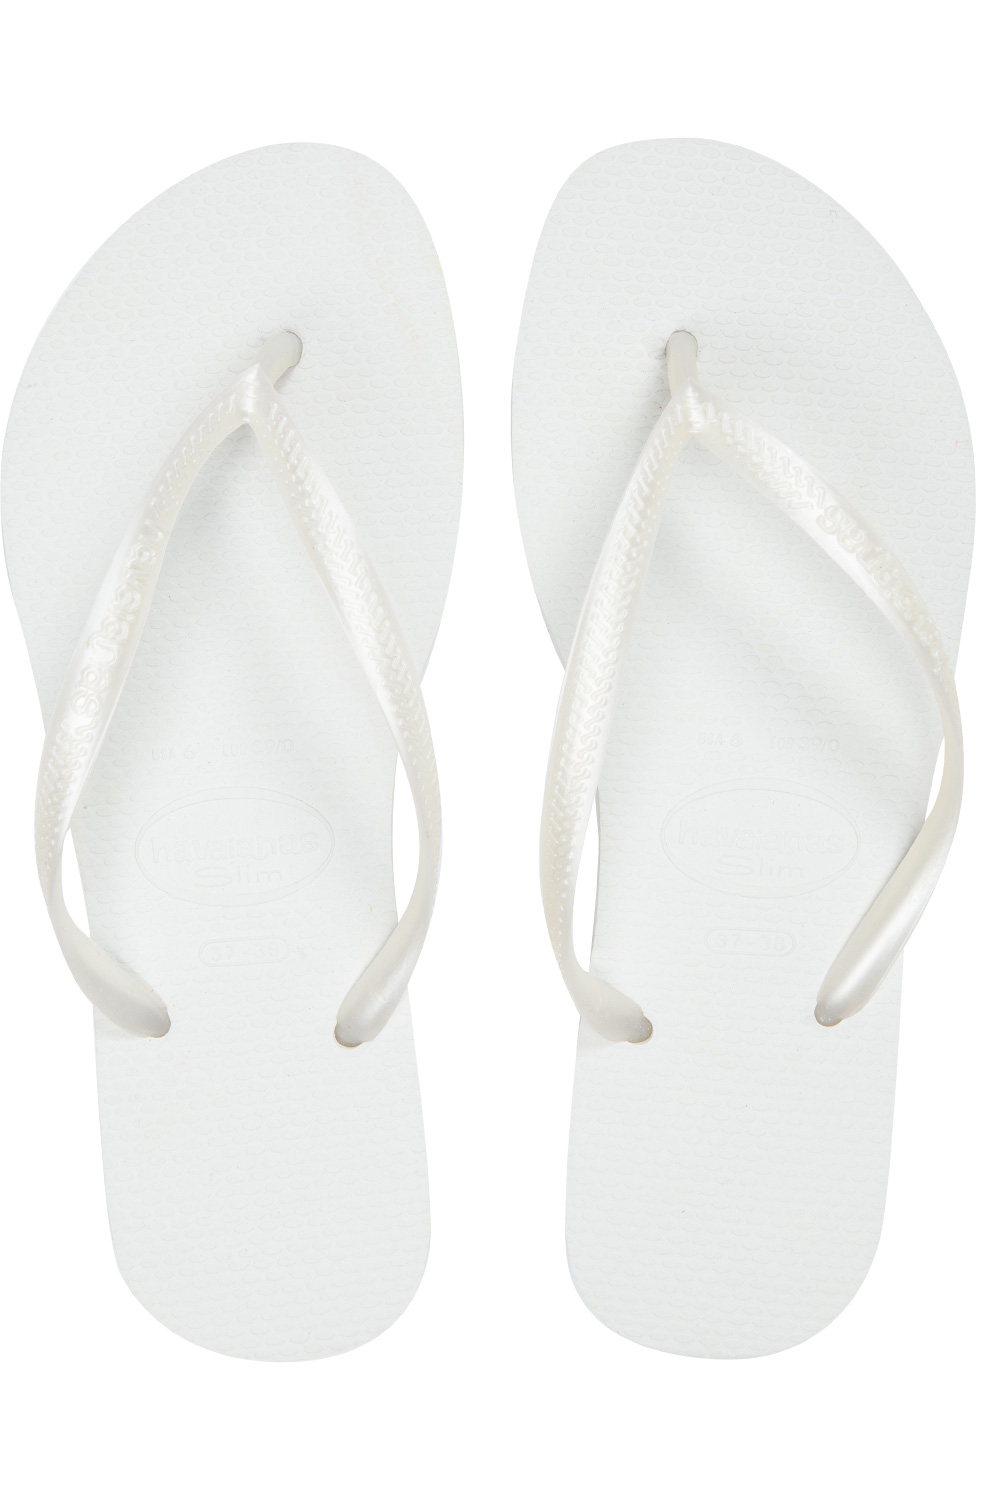 Havaianas slim white flip flops white 365ist for How to buy a house to flip